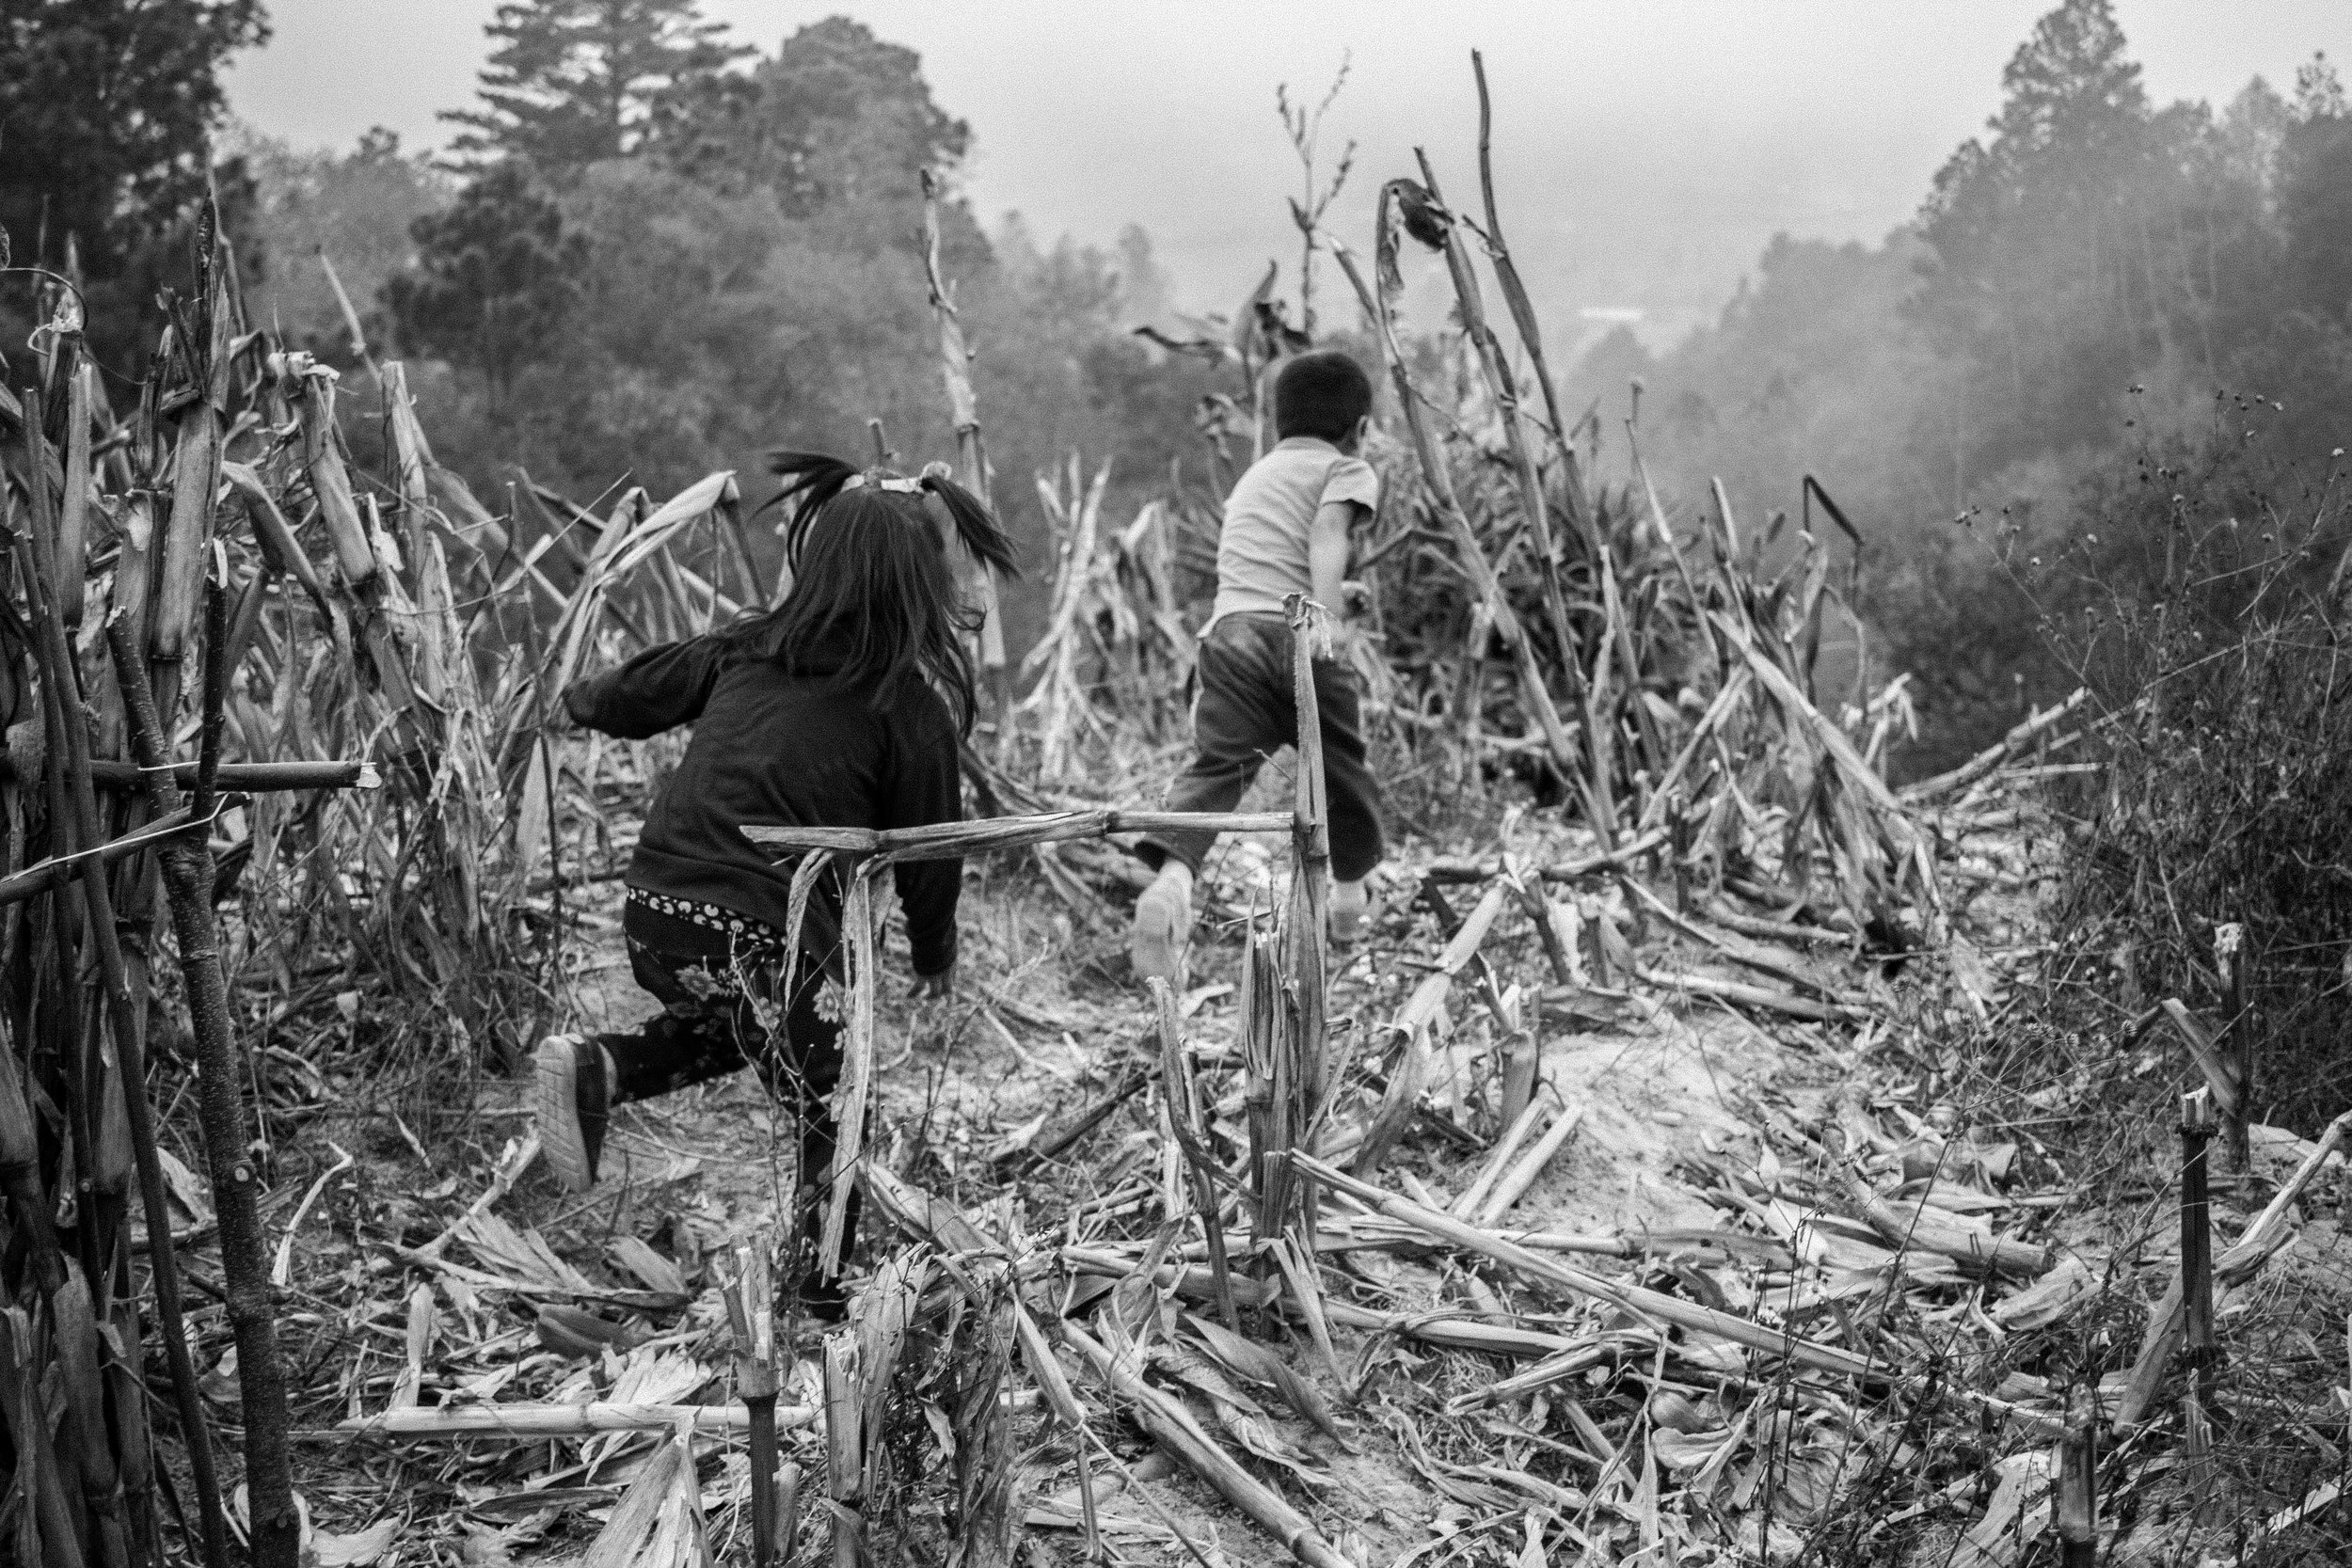 Two children run off into a corn field beside their highland home in the village of Chuacorral, near Solola, Guatemala. Unlike most modern children, the Maya children of the highlands spend their childhoods playing outside in nature, until they are old enough to begin work in the fields. © Cory Zimmerman, Feed the Children NGO